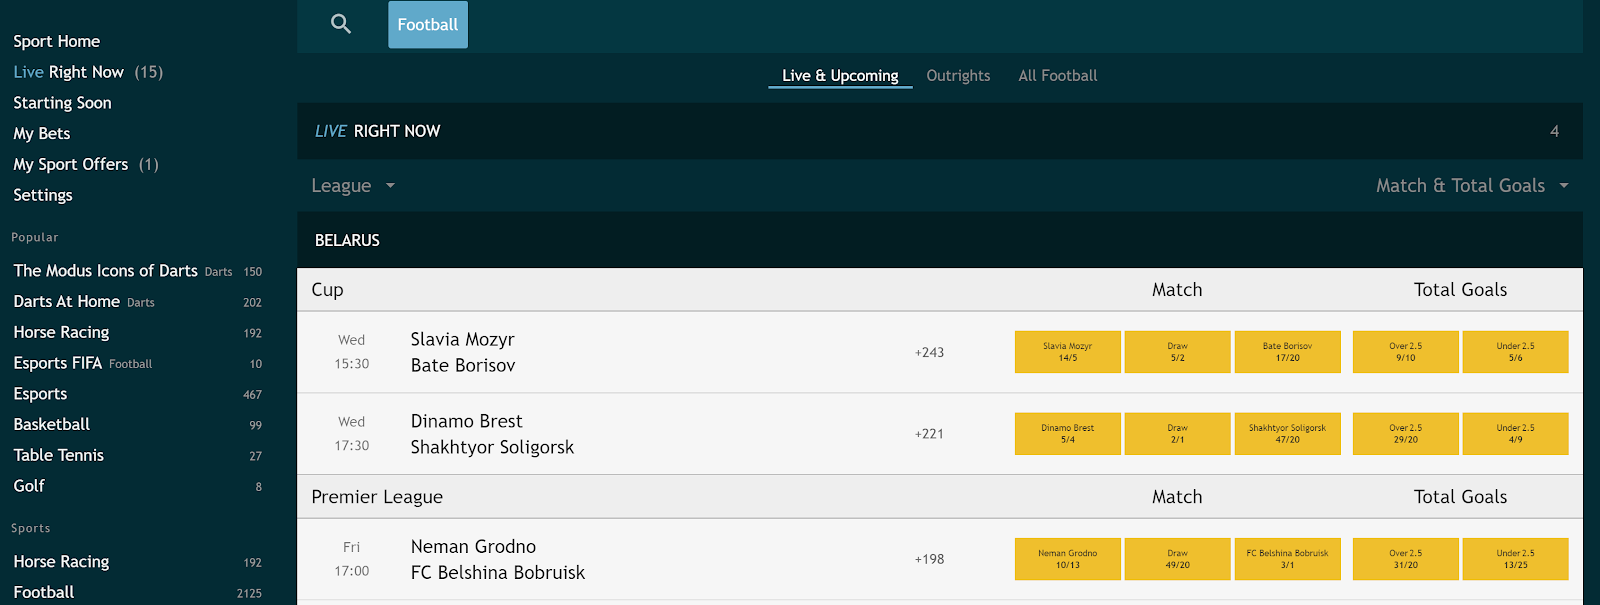 There are lots of sports you can bet on at Grosvenor Casinos